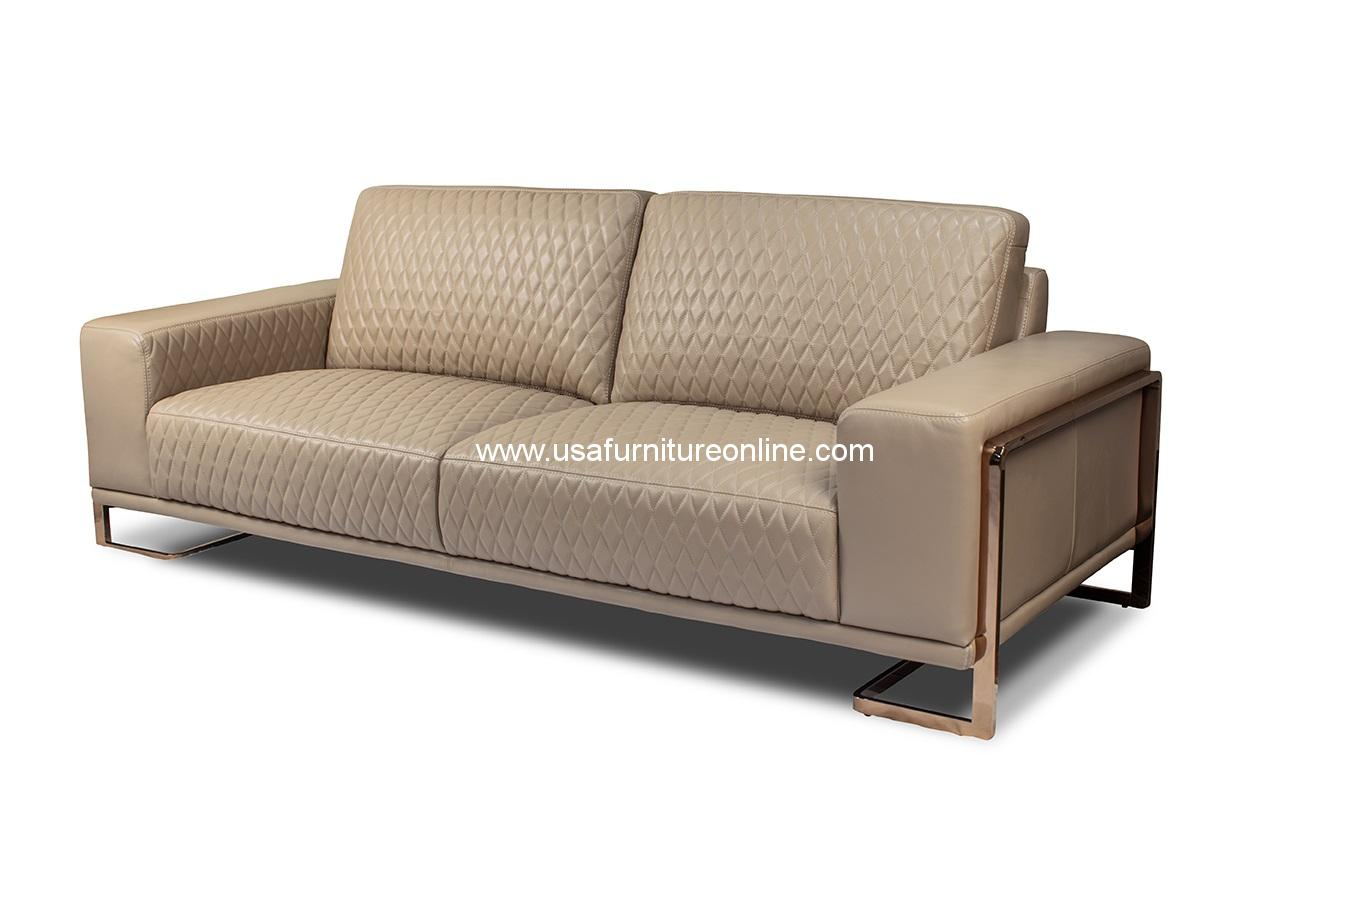 Pleasing Gianna Peach Leather Loveseat Rose Gold Leg Pabps2019 Chair Design Images Pabps2019Com